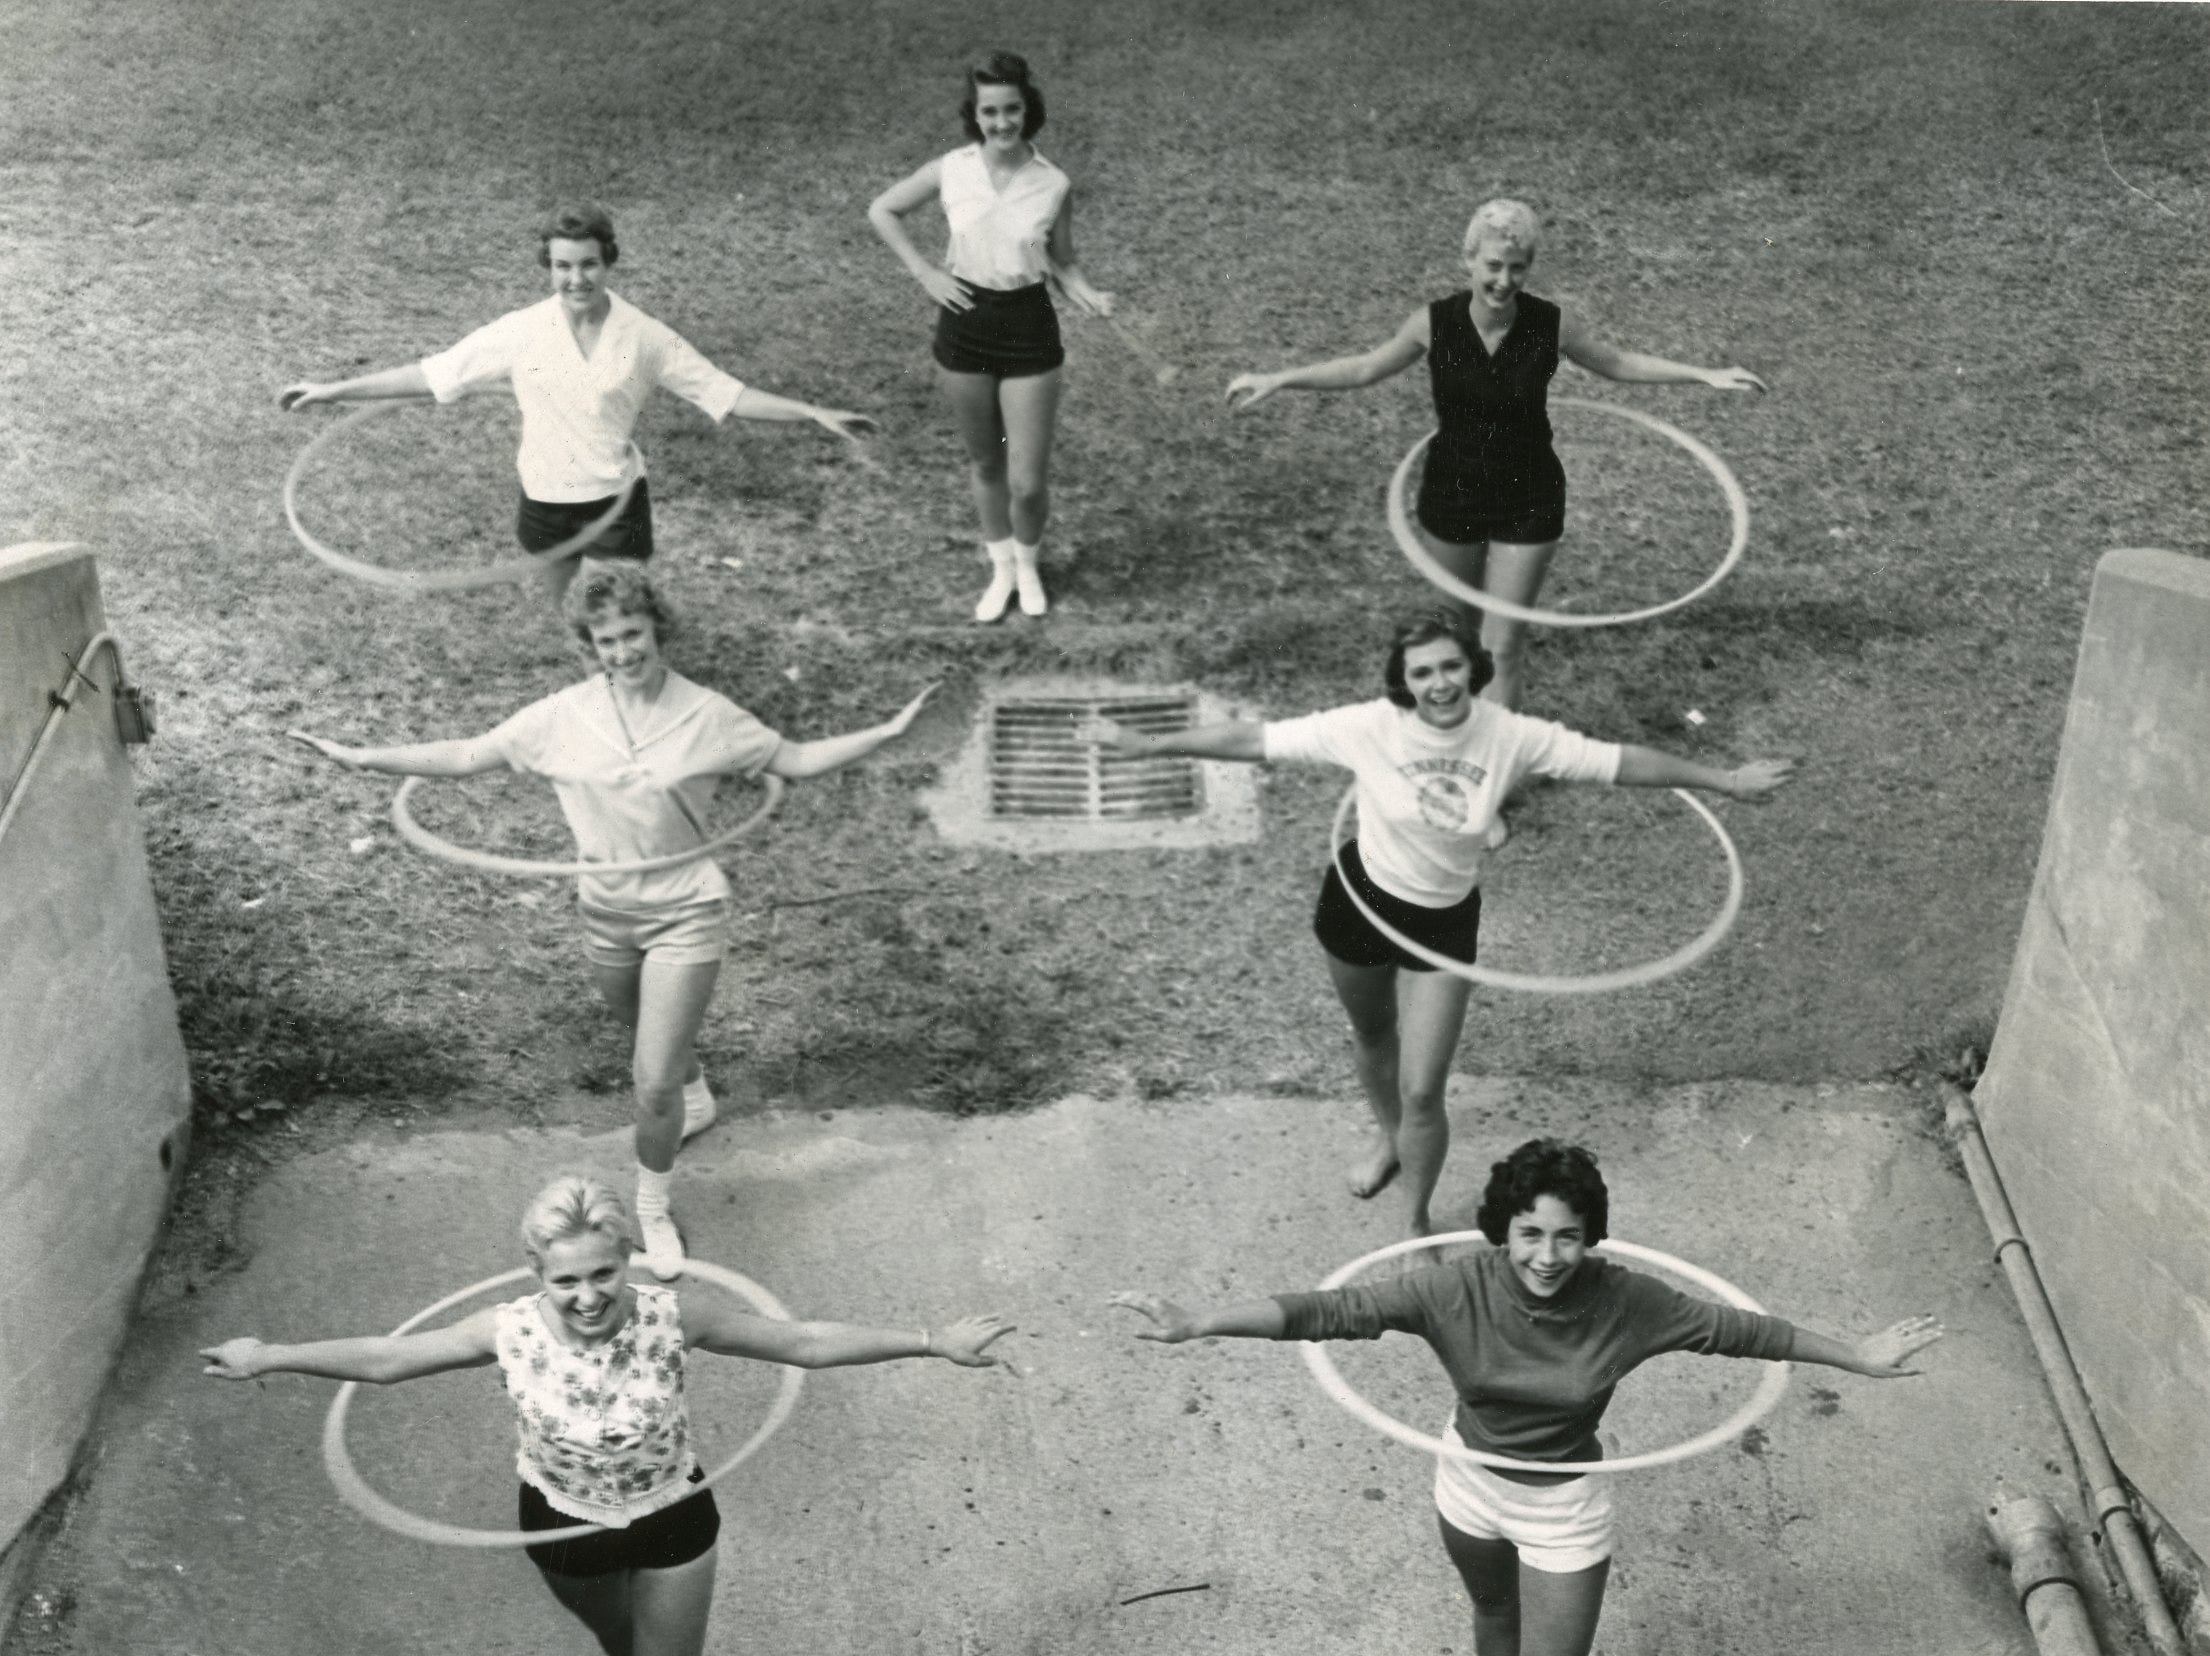 UT majorettes practice a routine using hula hoops in September, 1958. Pictured are Myrna Manning, Brenda Smith, Helen Newport, Celia Wright, Pat Price, Pat Cornett and Claudette Riley (center back). Riley became the first scholarship majorette in the history of the University of Tennessee, and since then she has traversed the nation to teach young girls her art. The first time she did her baton-twirling act at Tennessee in 1958, the other majorettes went through a hula-hoop act.